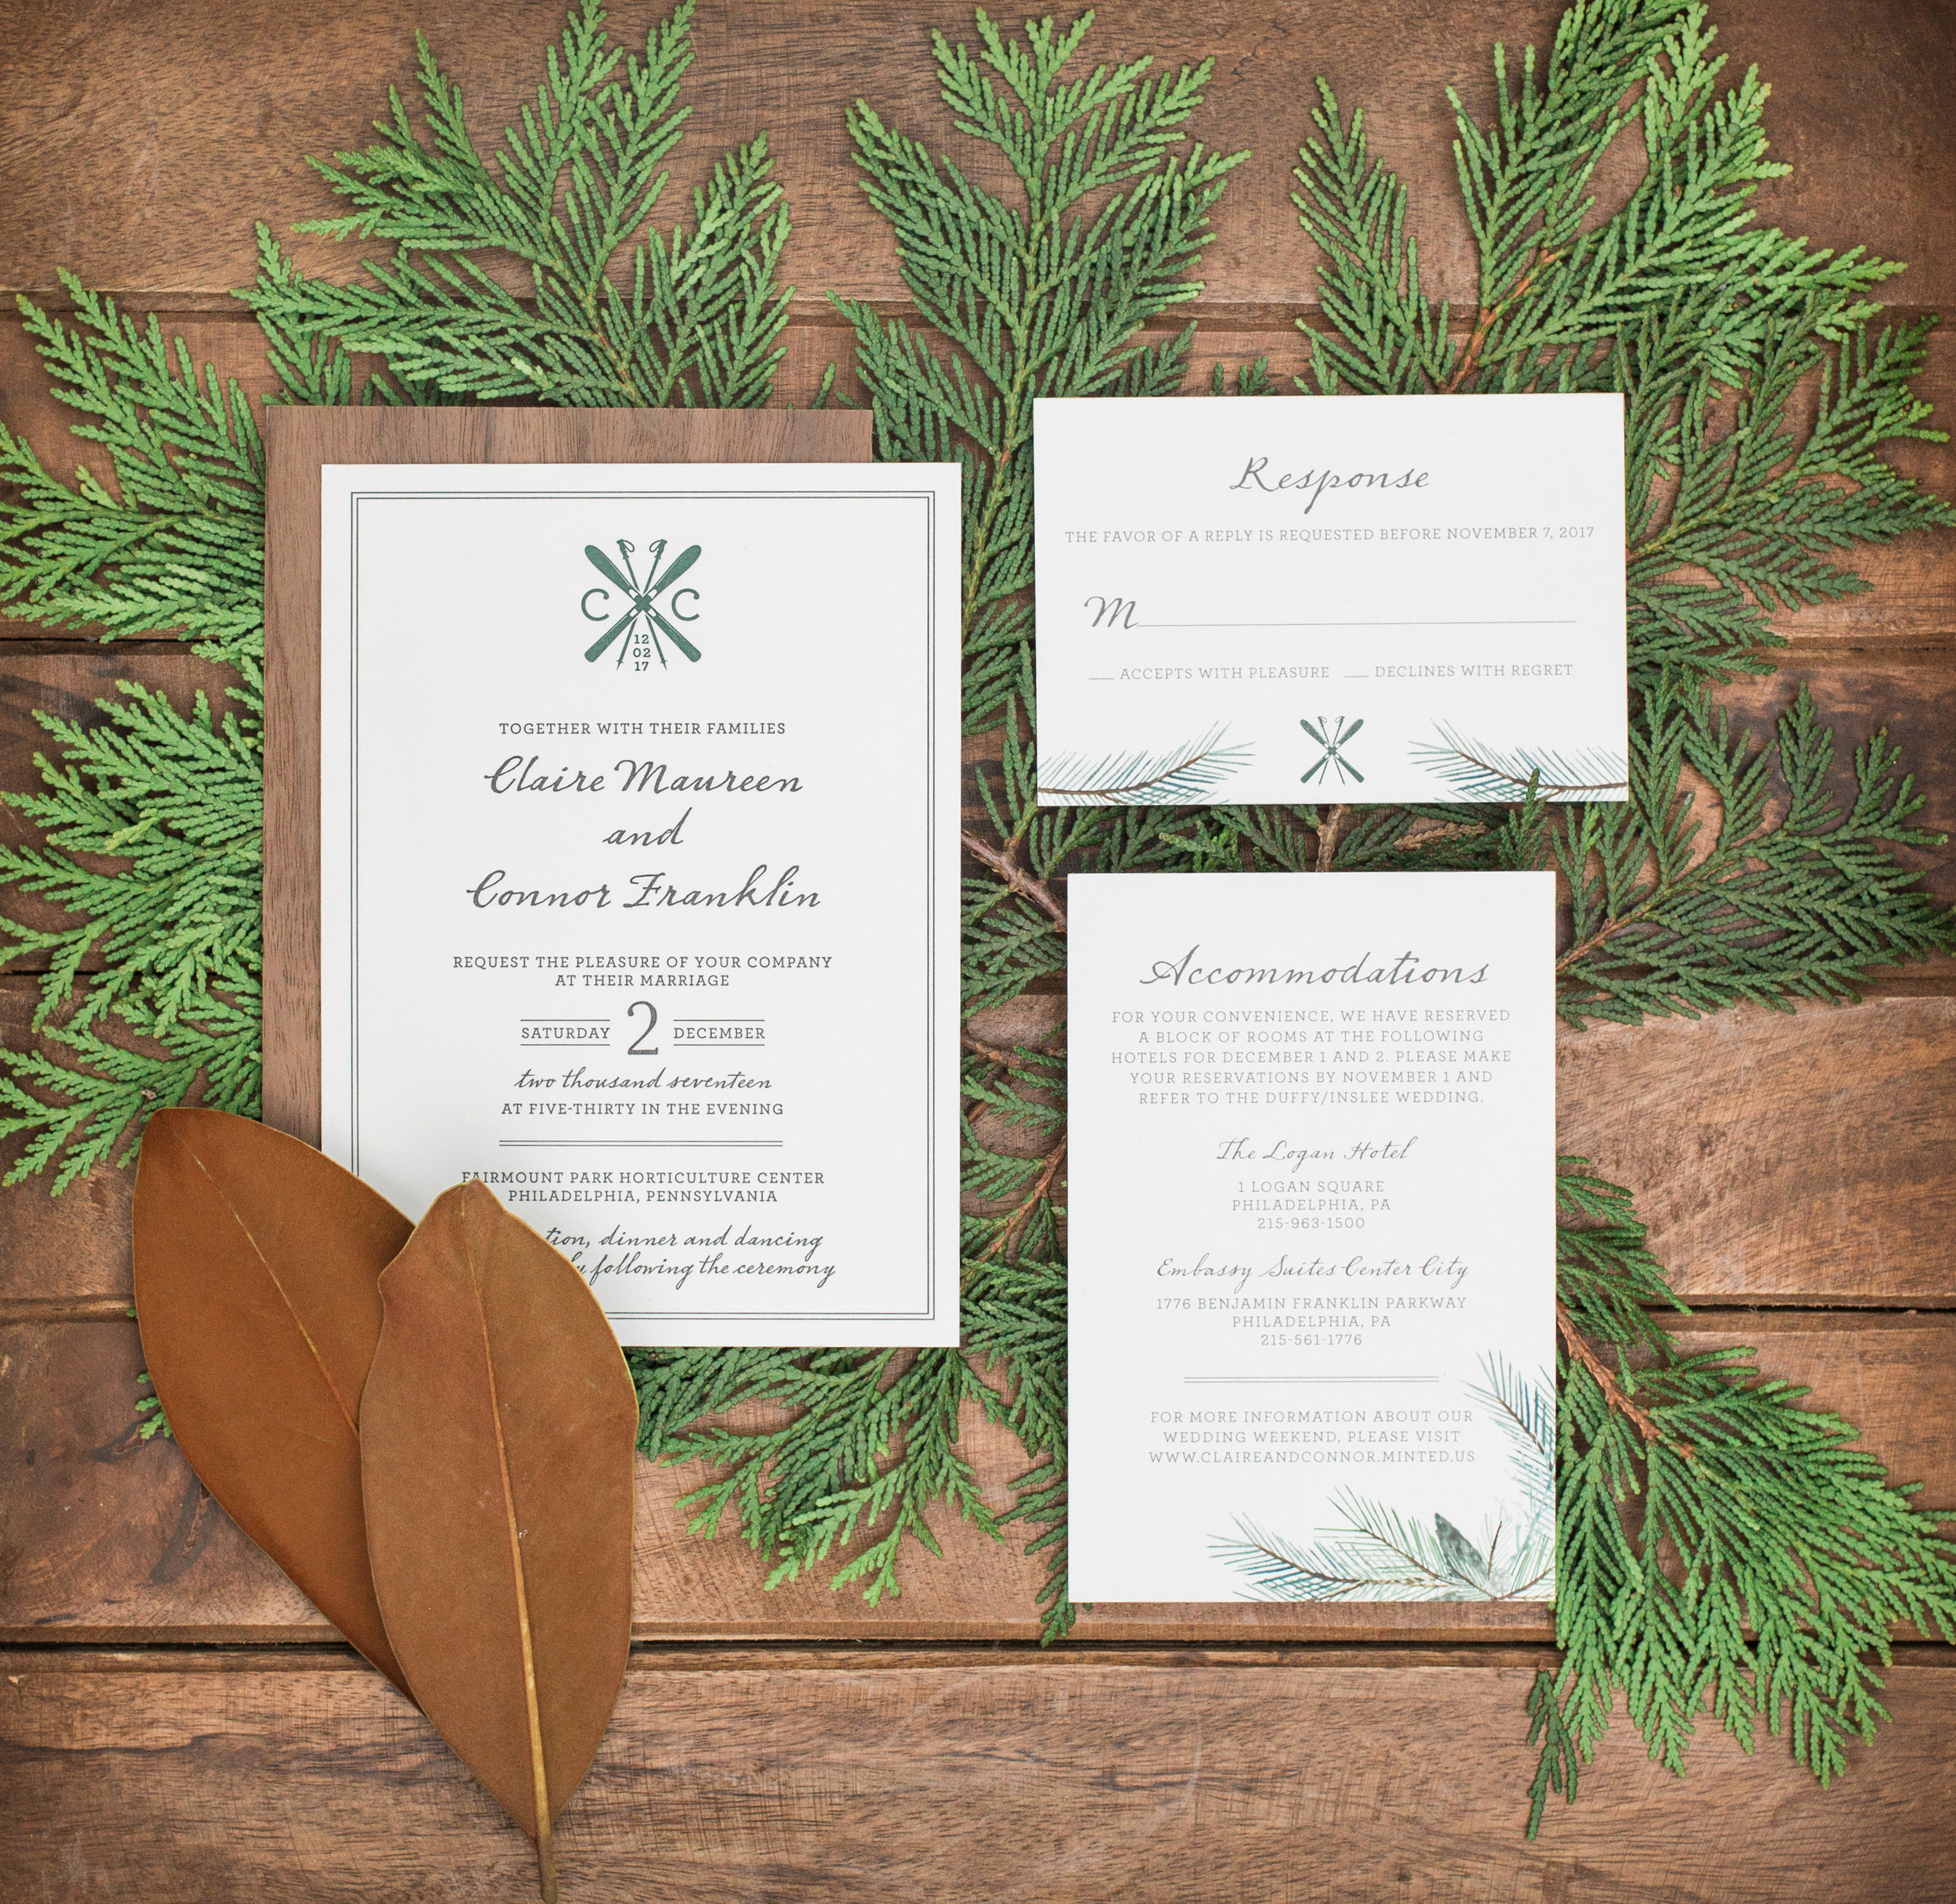 Hudson-Nichols-Martha-Stewart-Weddings-Winter-Ski-Philadelphia-Claire-Conner_012.jpg